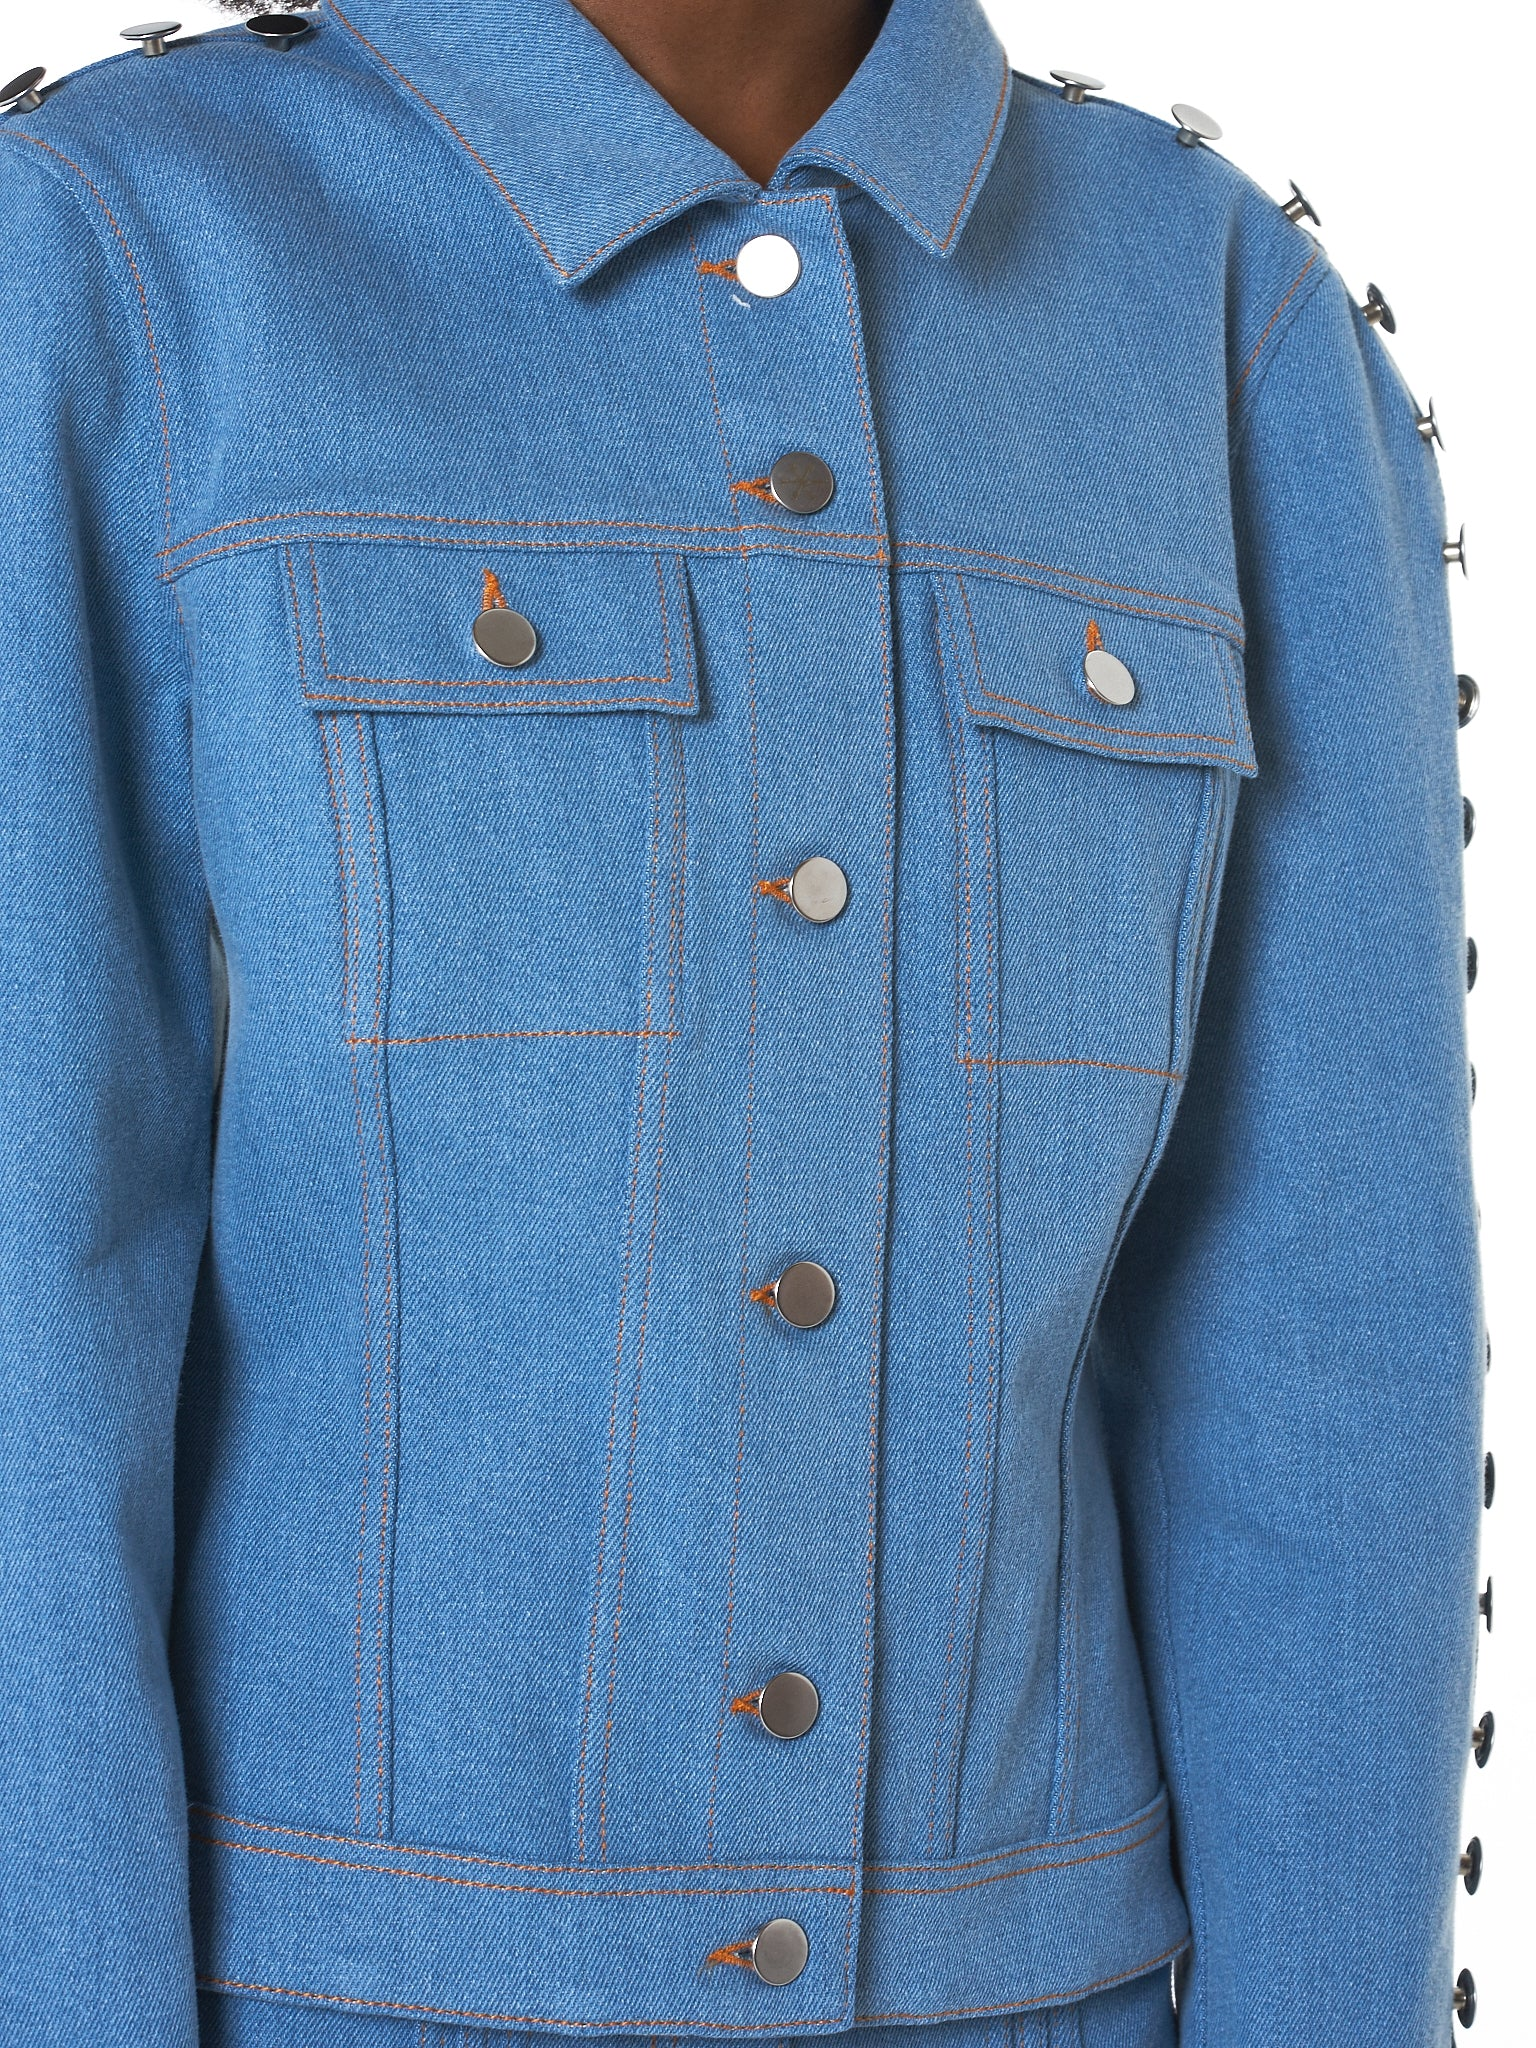 Kreist Denim Jacket - Hlorenzo Detail 4